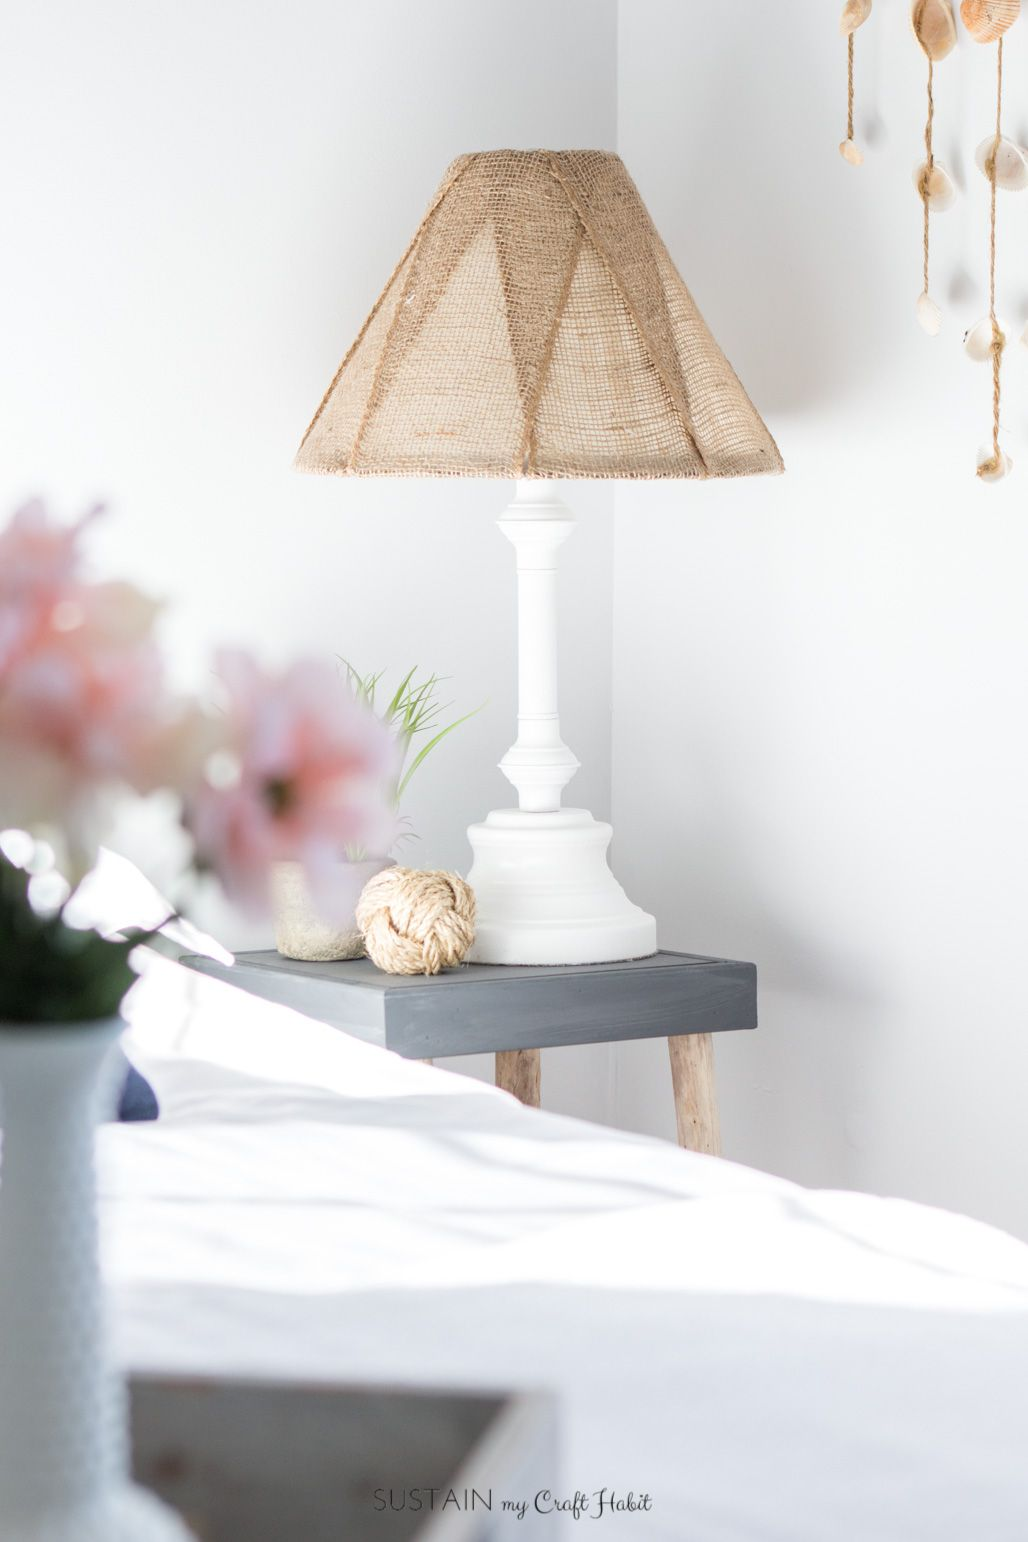 A diy brass lamp makeover with a burlap lampshade avec